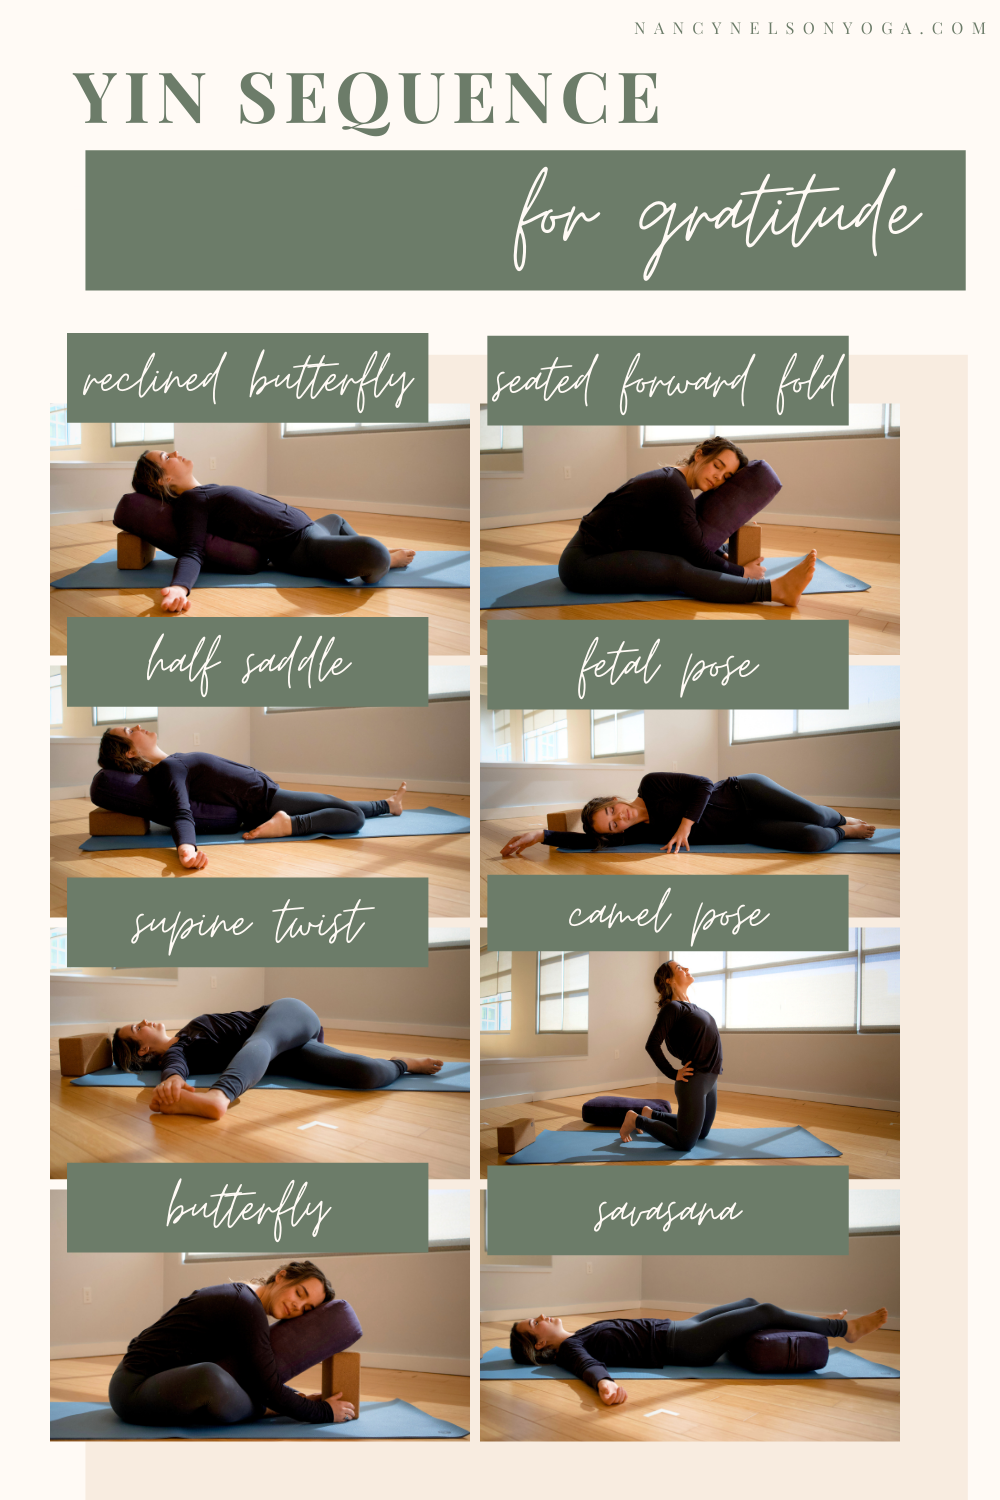 26+ Gentle yin yoga sequence ideas in 2021